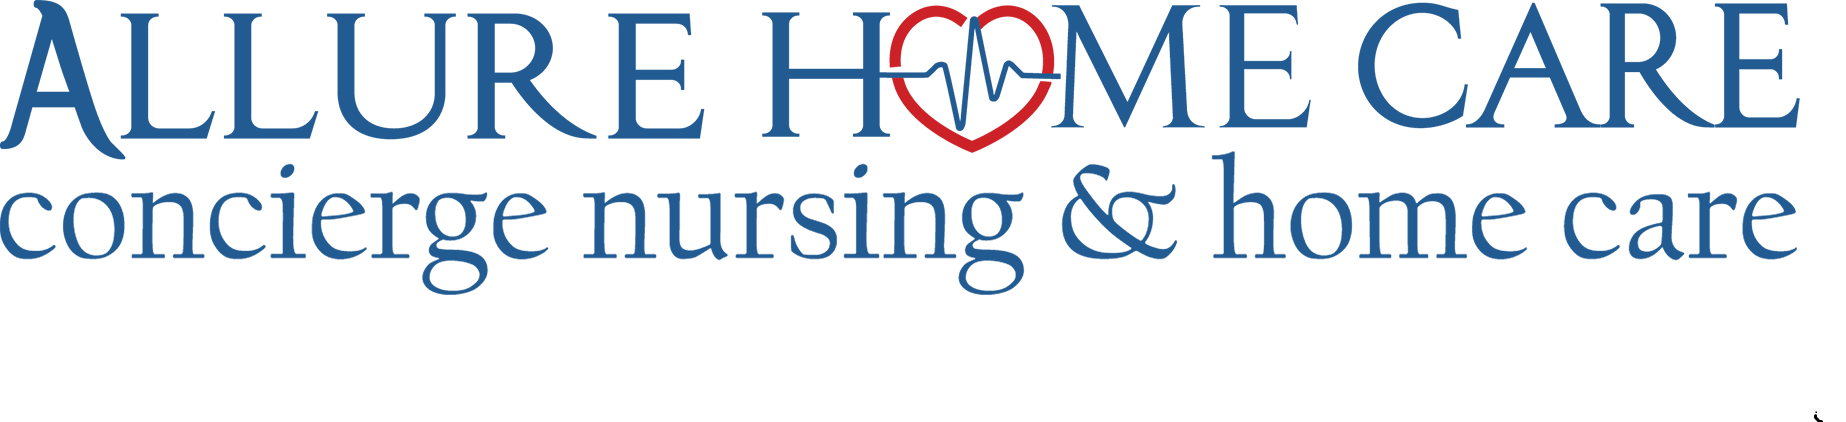 Allure Home Care, LLC